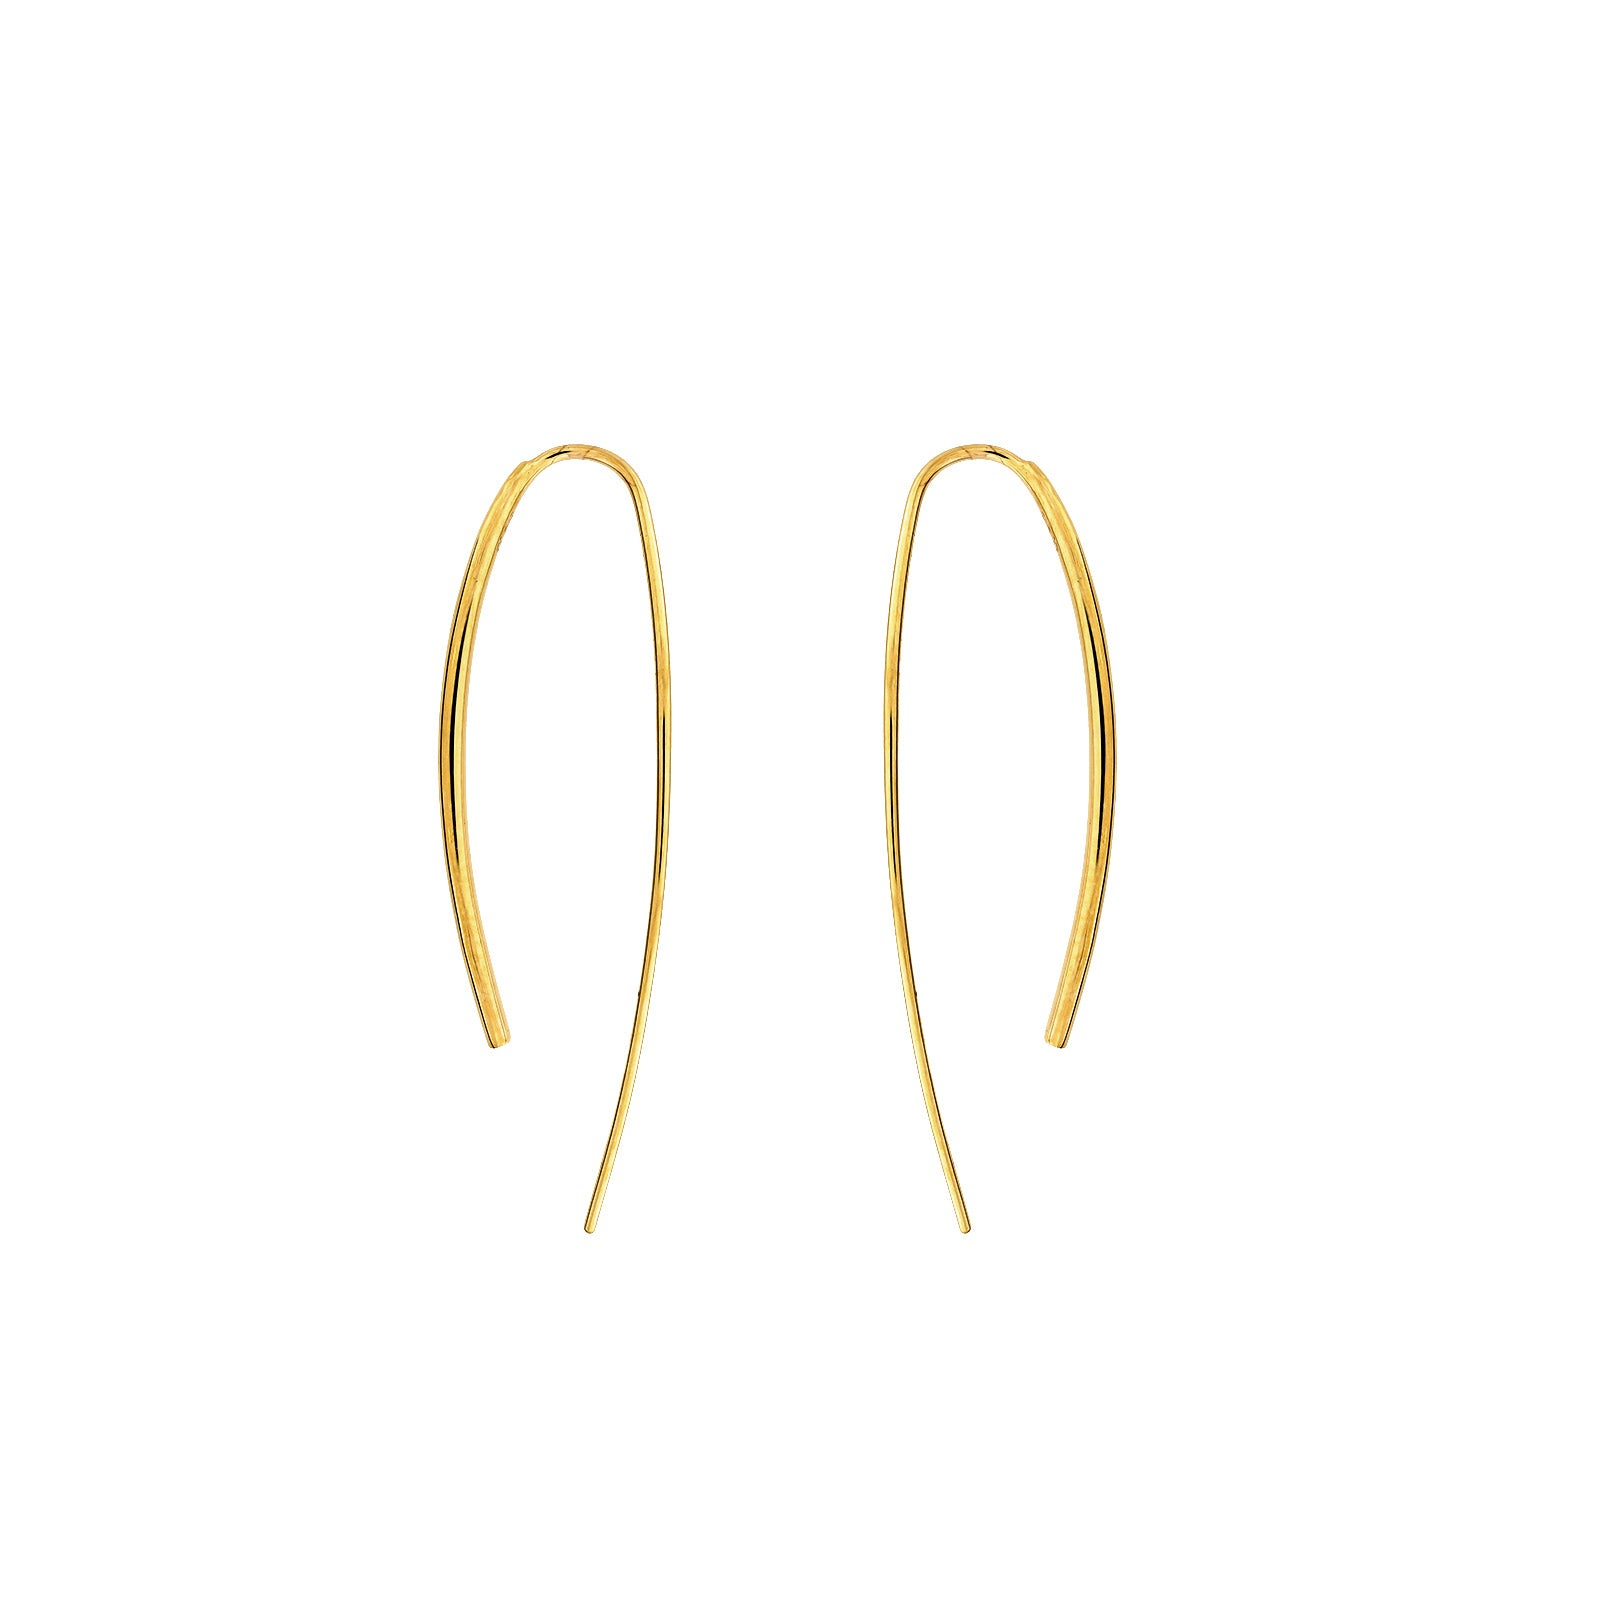 9ct Gold Hook-Through Earrings